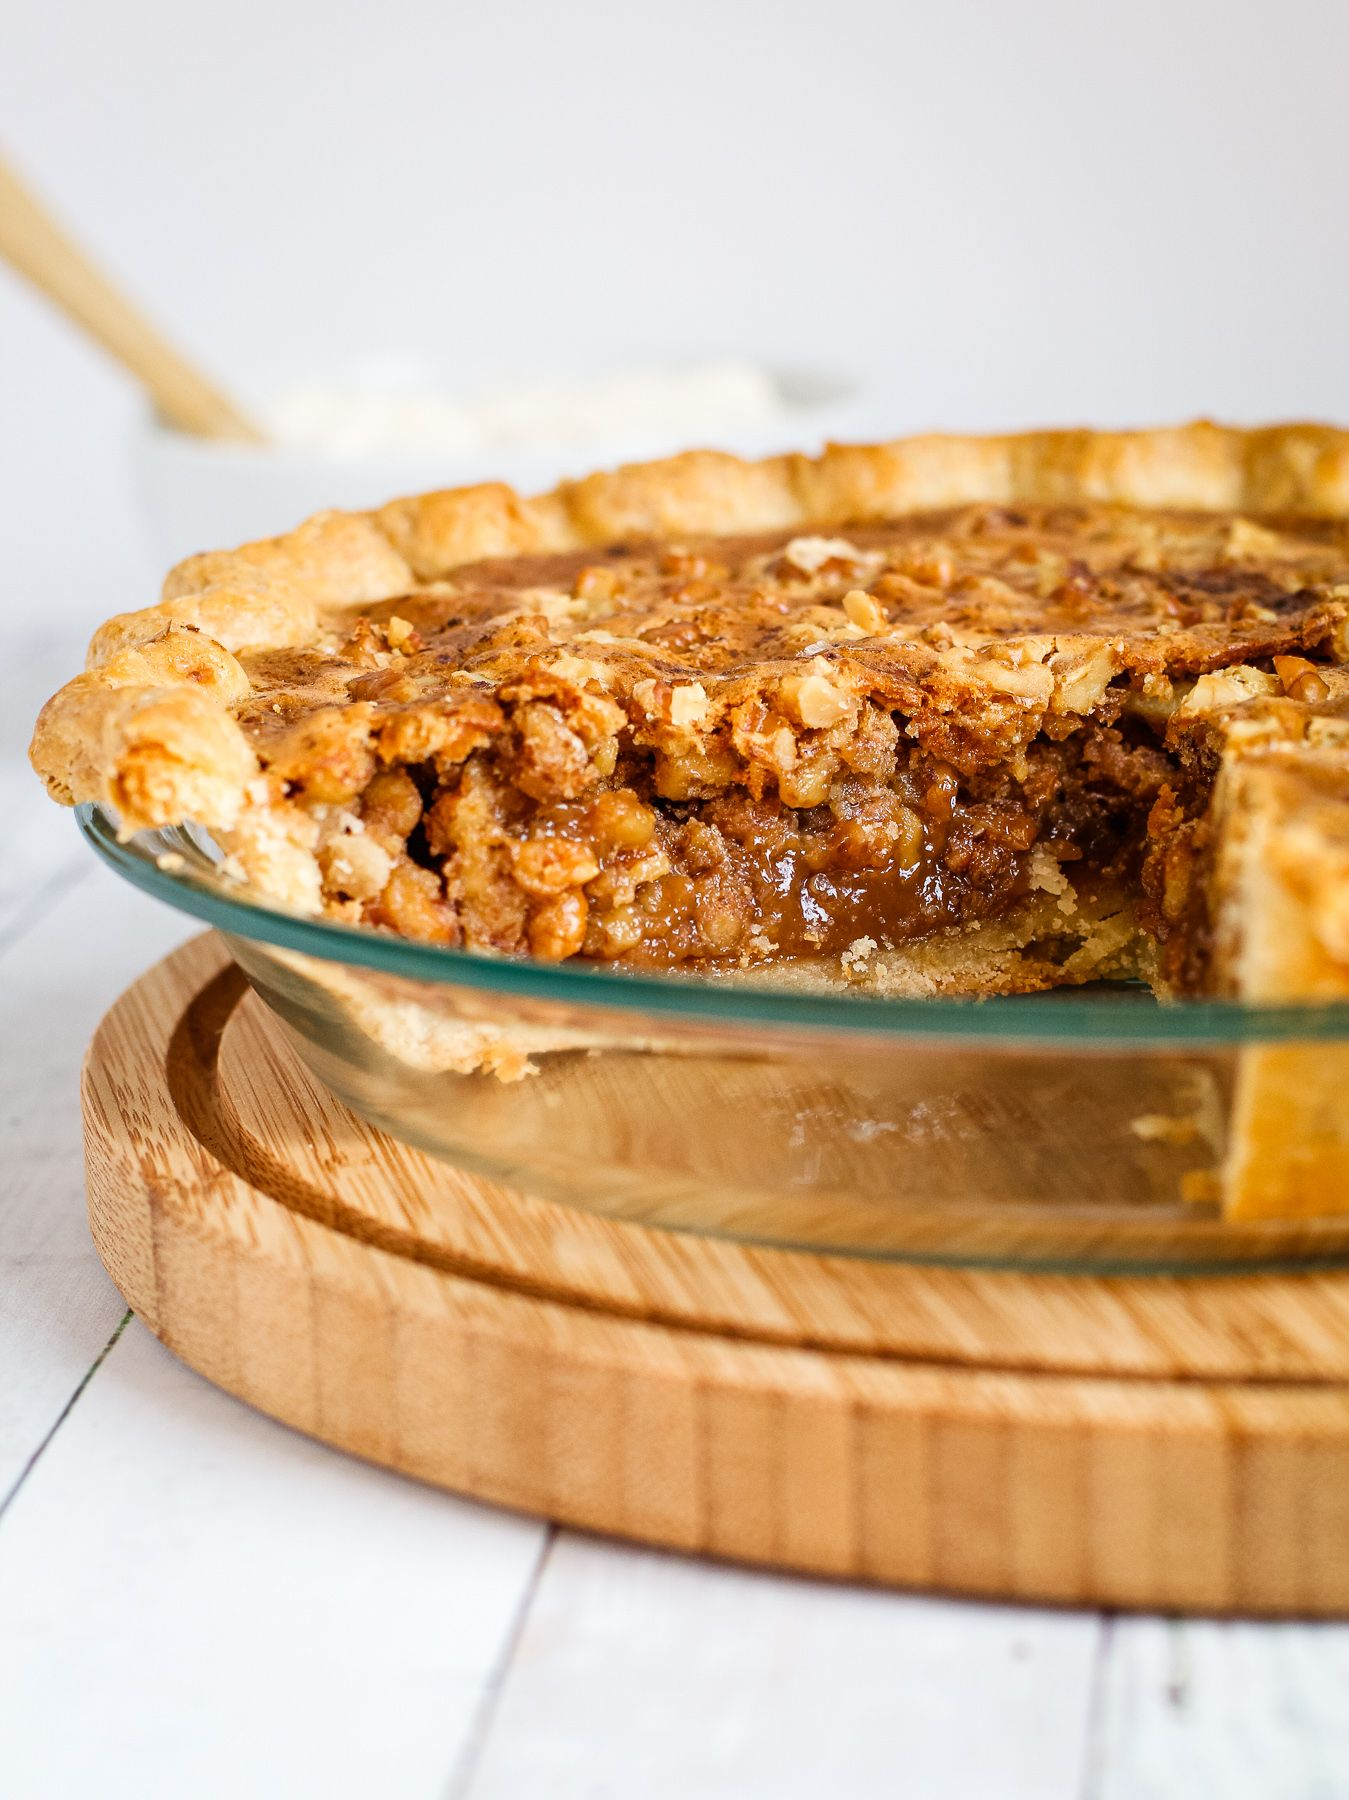 This Honey Walnut Pie Starts With Perfectly Toasted Walnuts